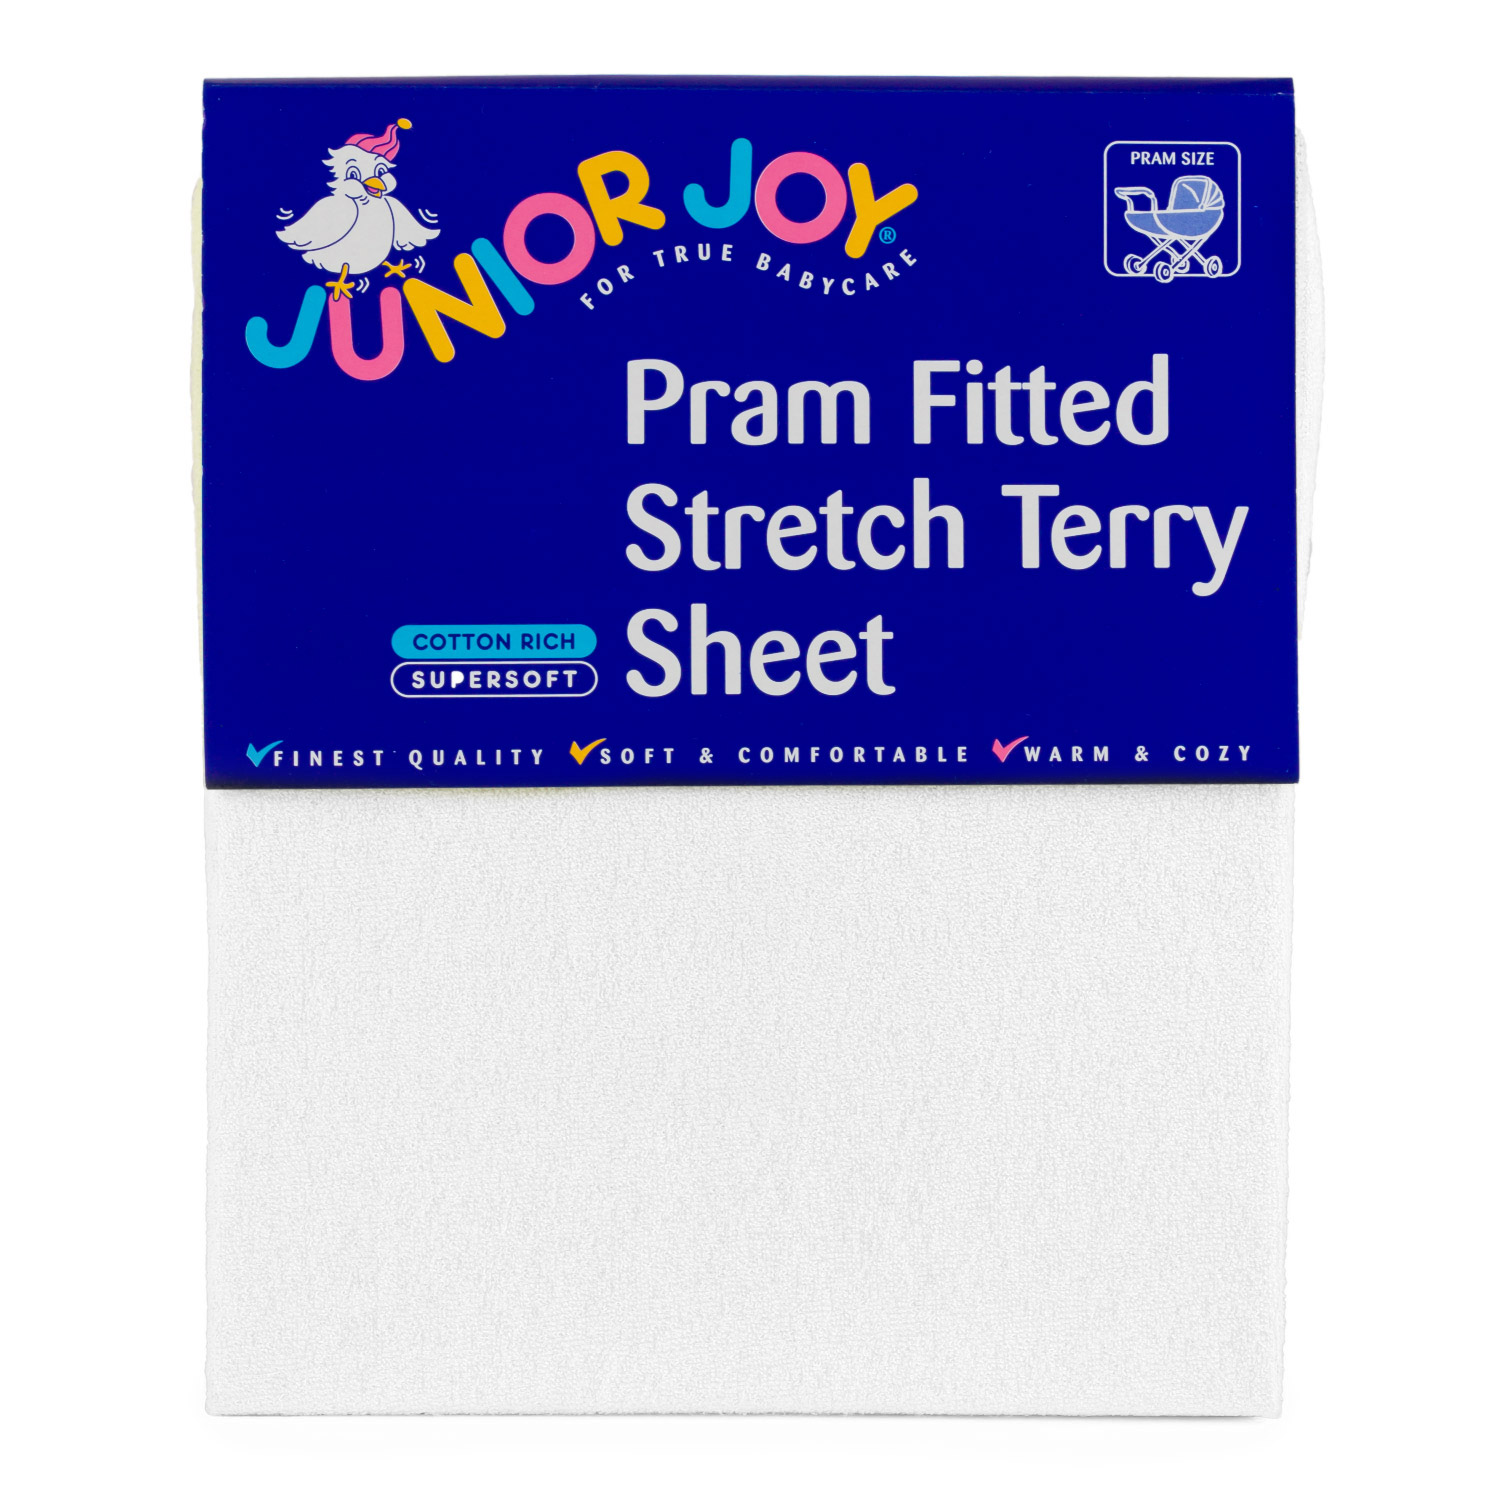 Junior Joy Pram Fitted Stretch Terry Sheet